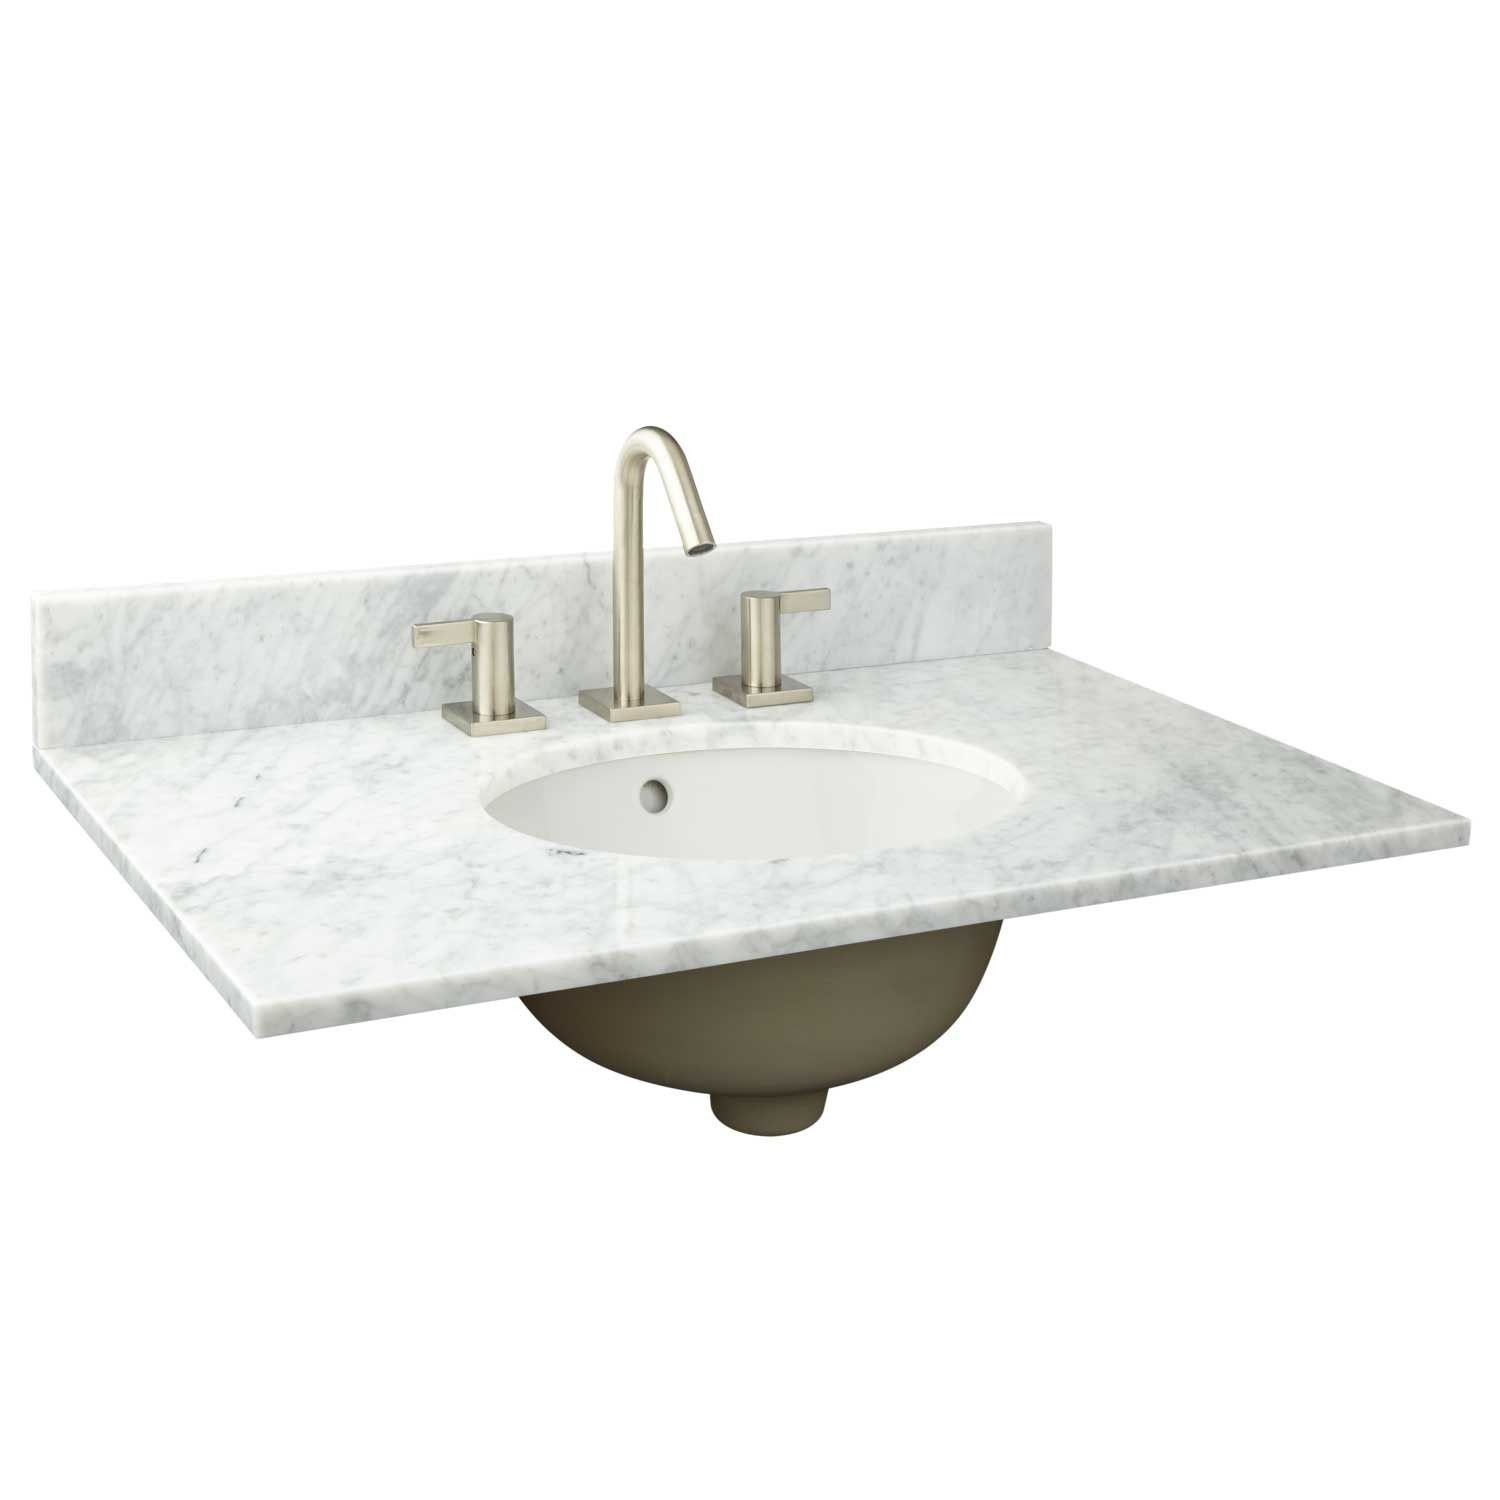 31 X 19 Narrow Depth Marble Vanity Top For Undermount Sink